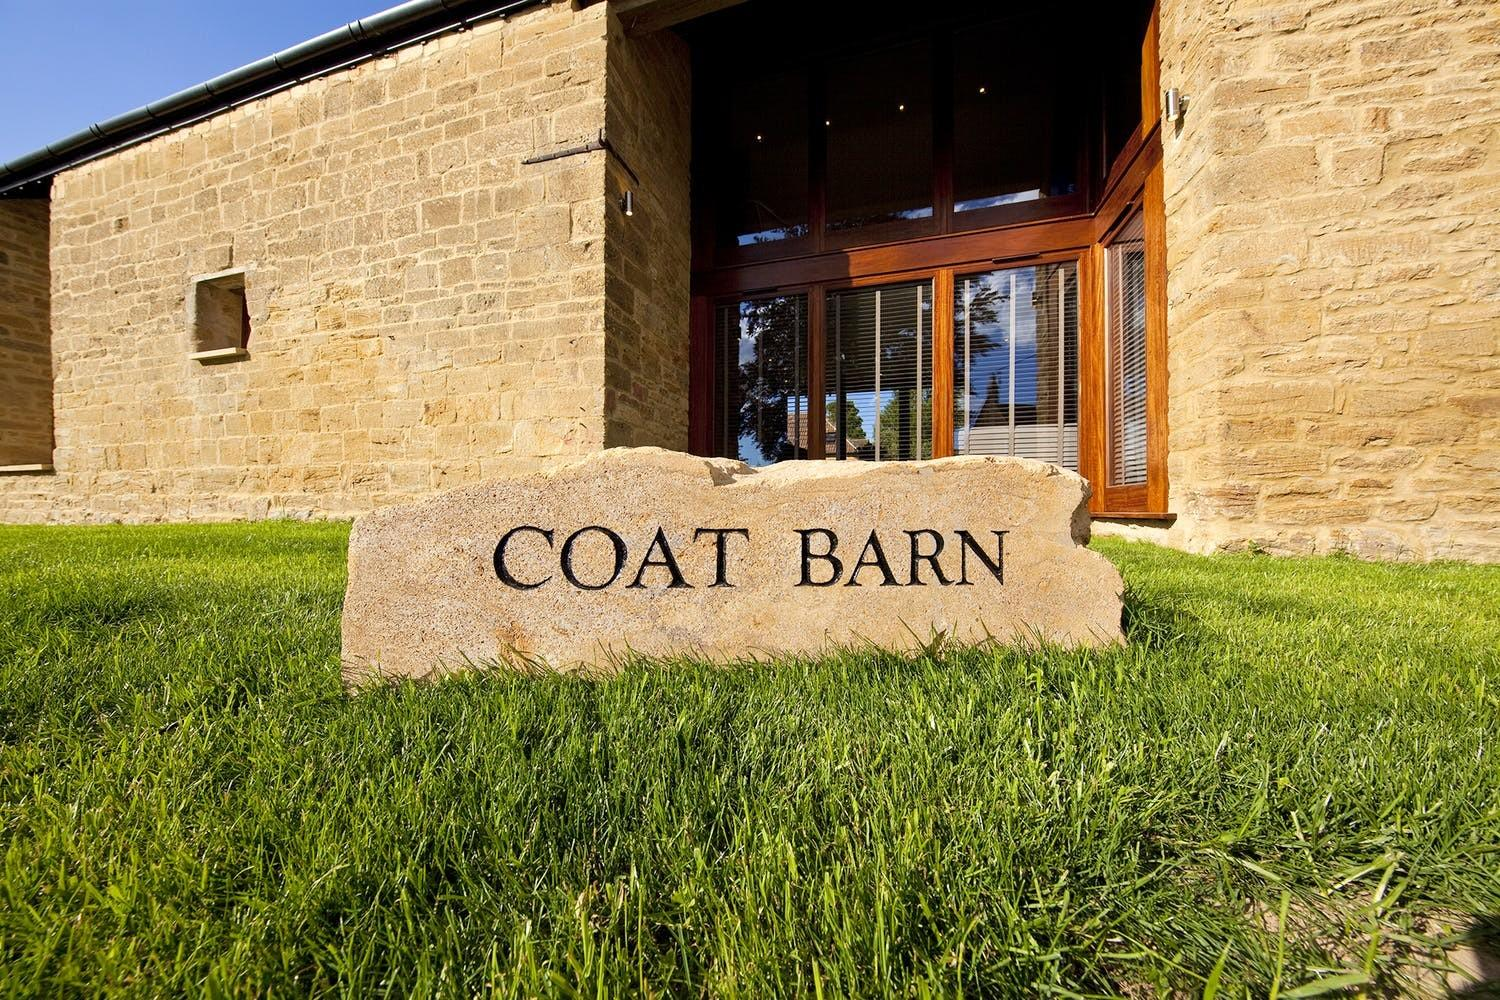 Coat Barn Somerset Group Stays